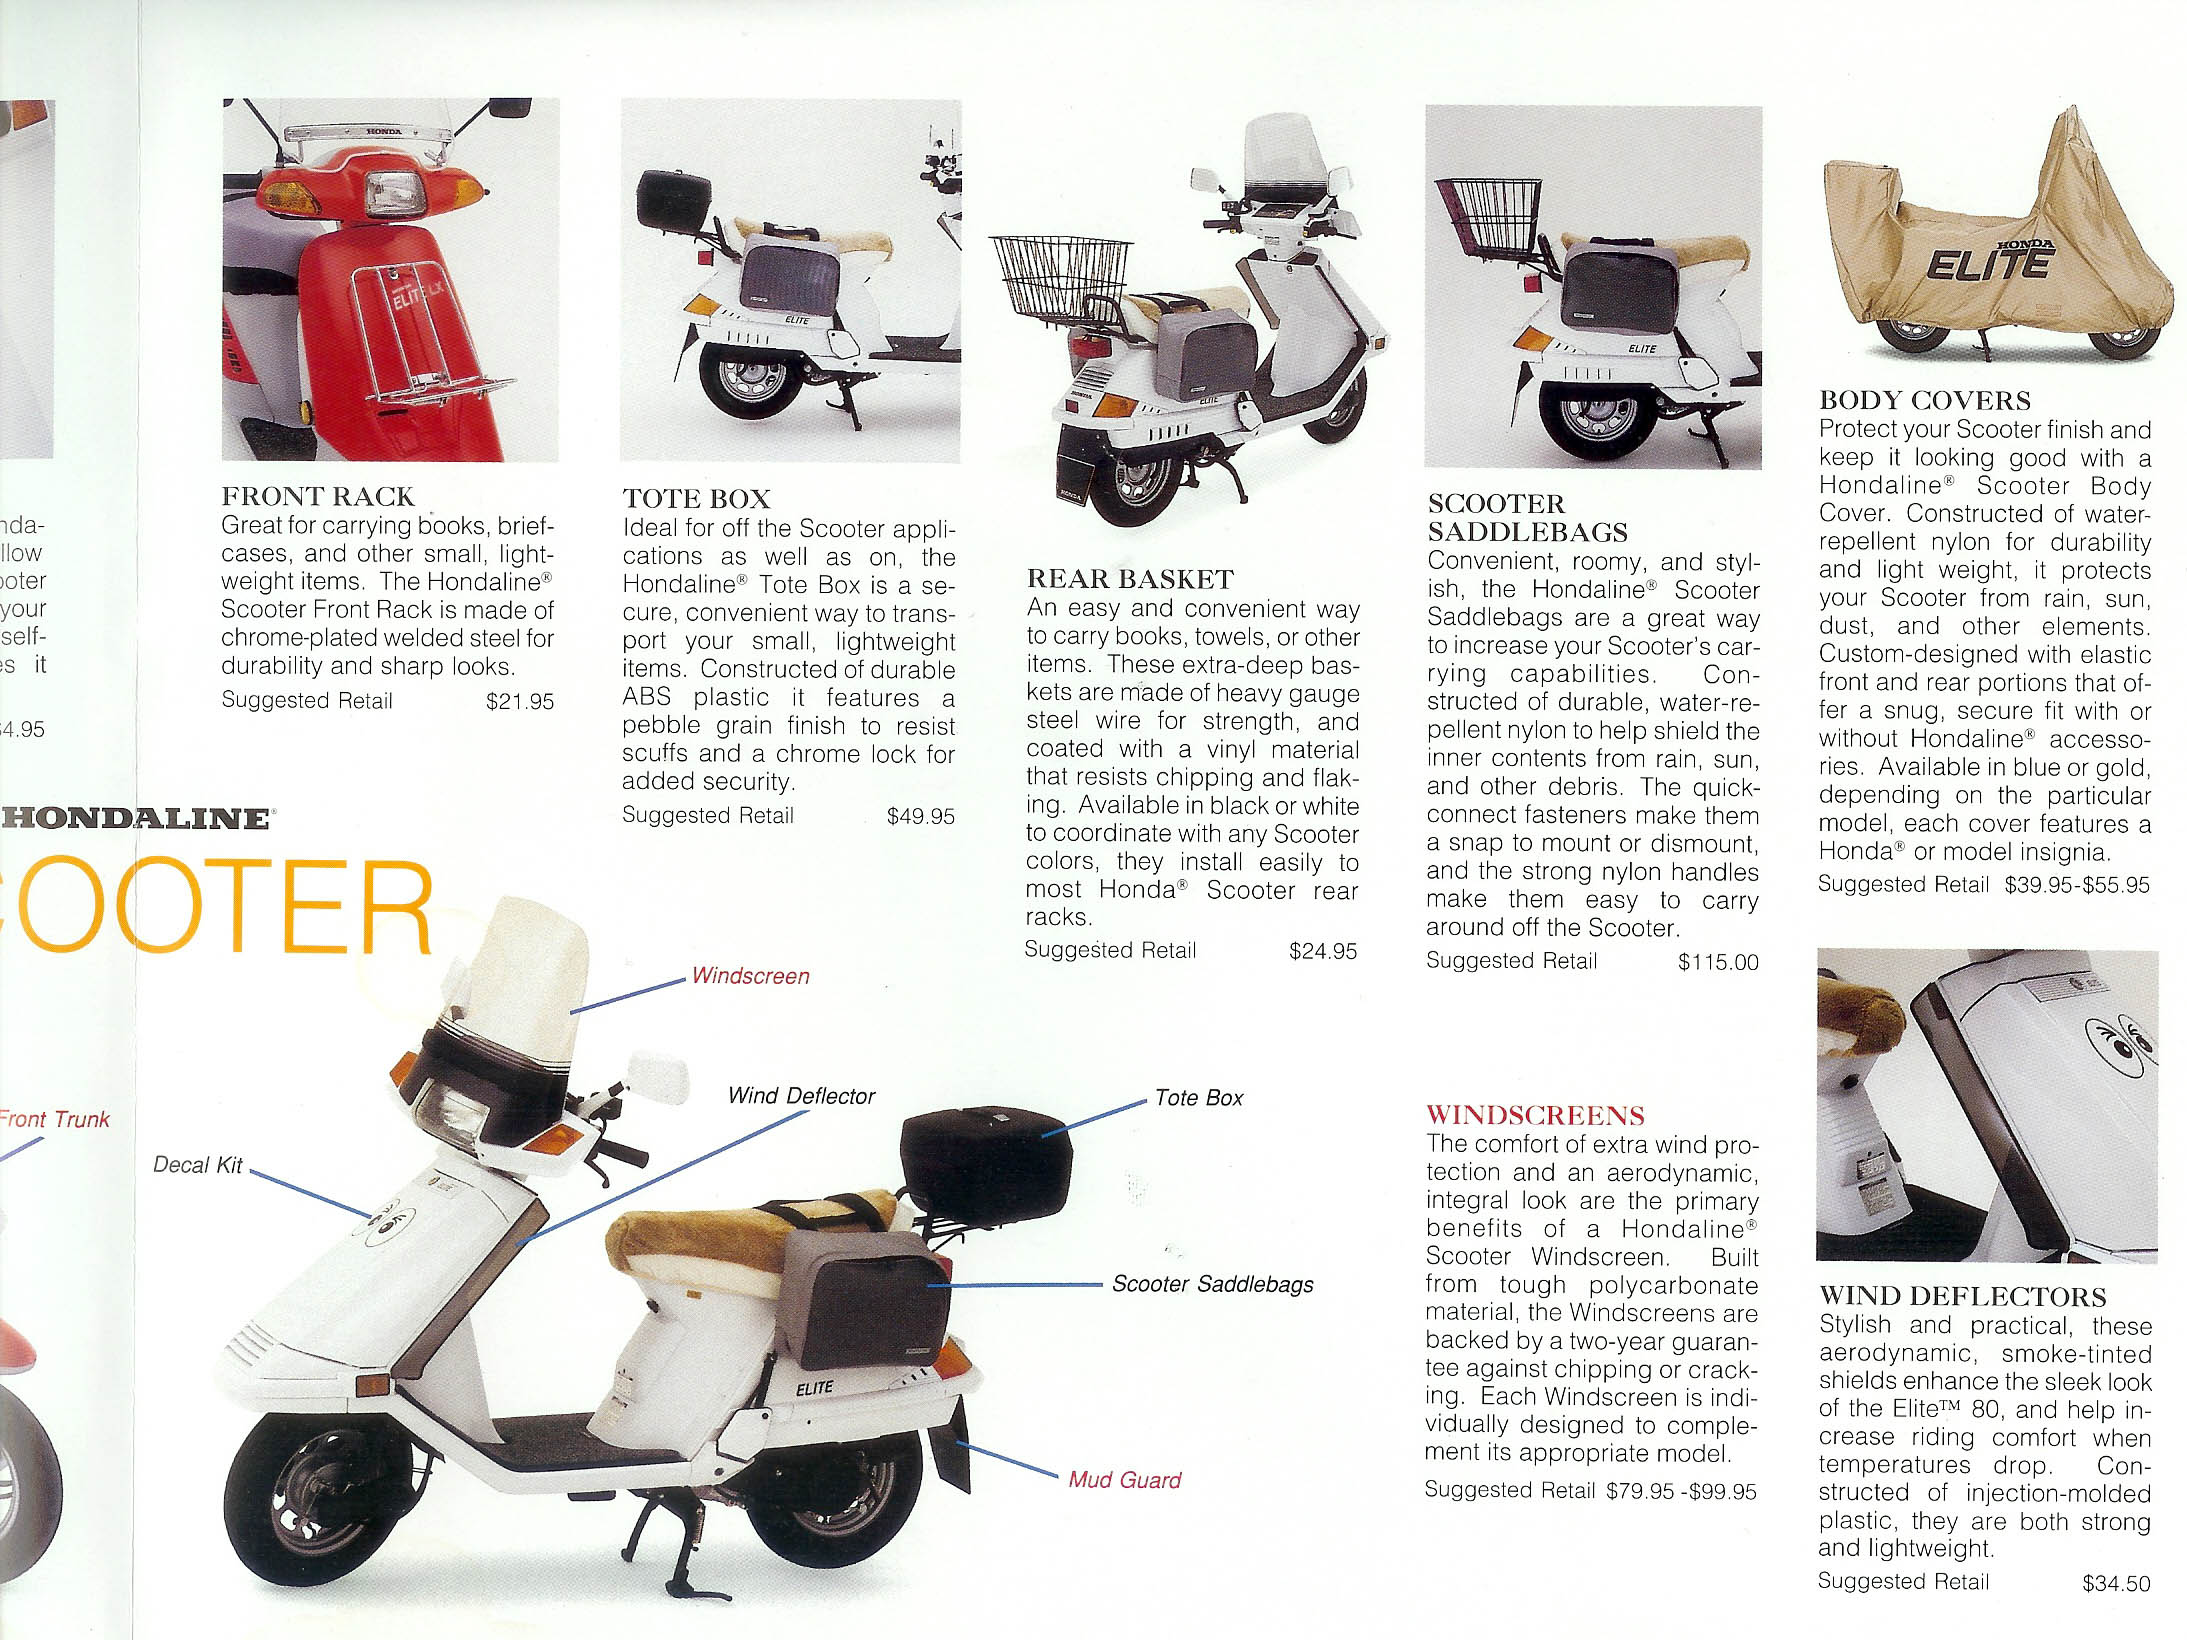 1989 Scooter Accessories page ...